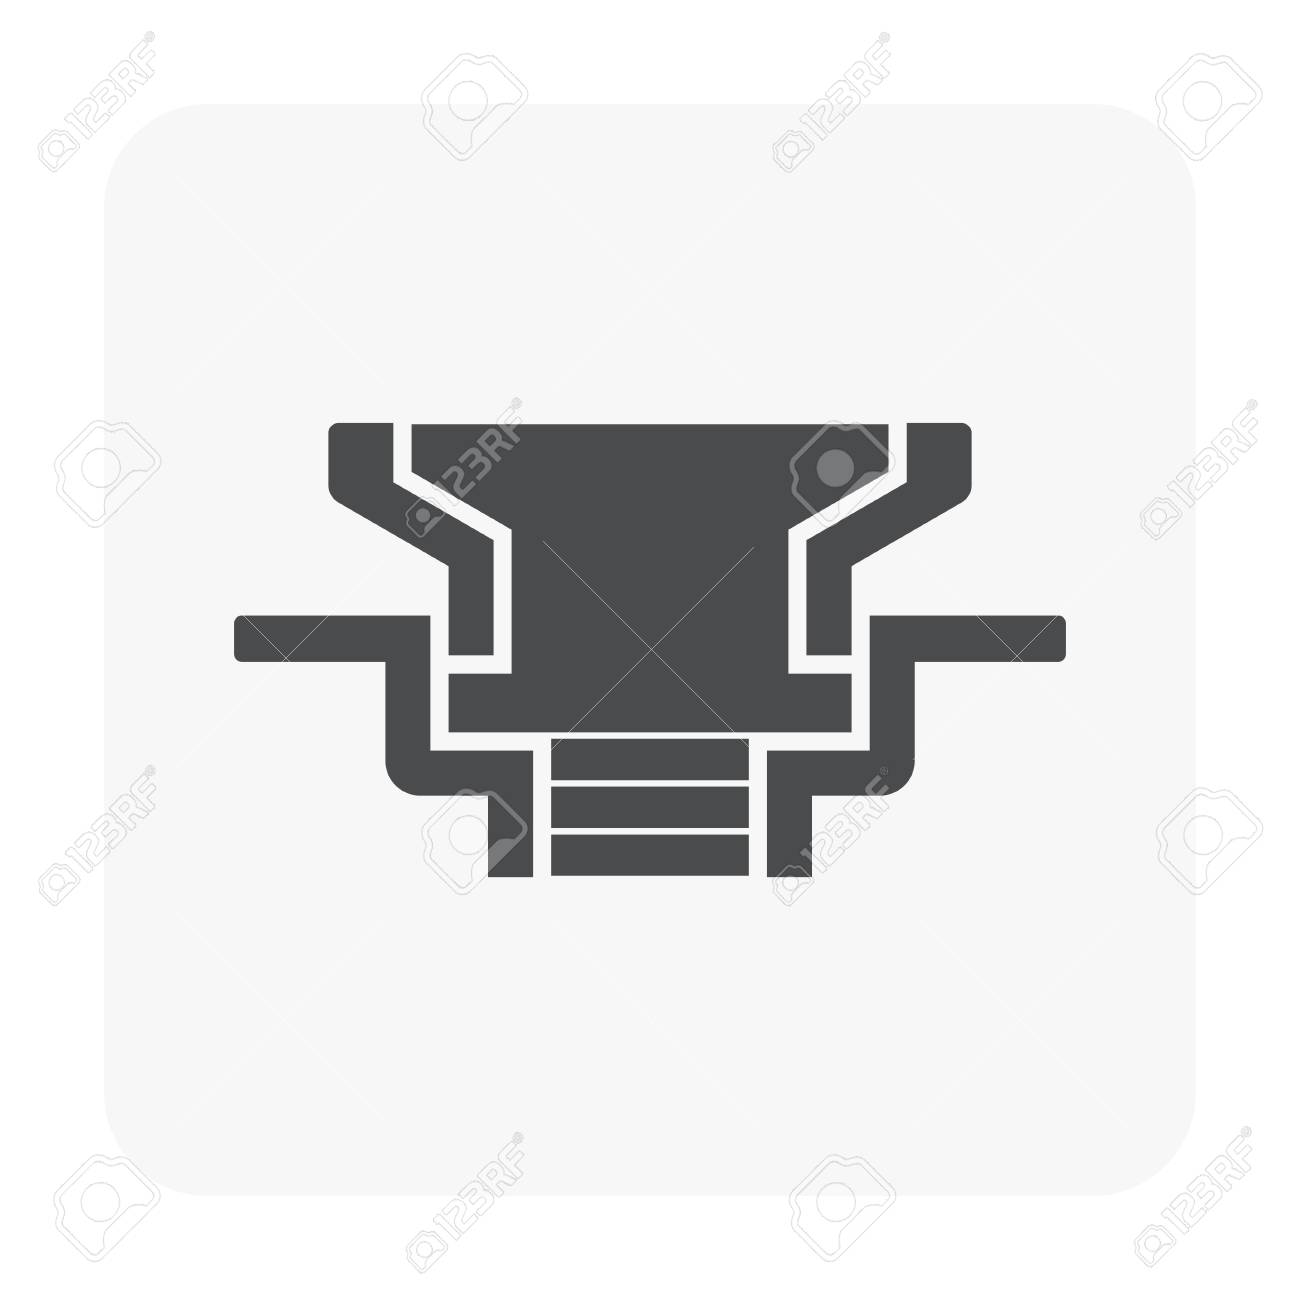 Floor Drain And Drainage Equipment Icon On White Background Royalty